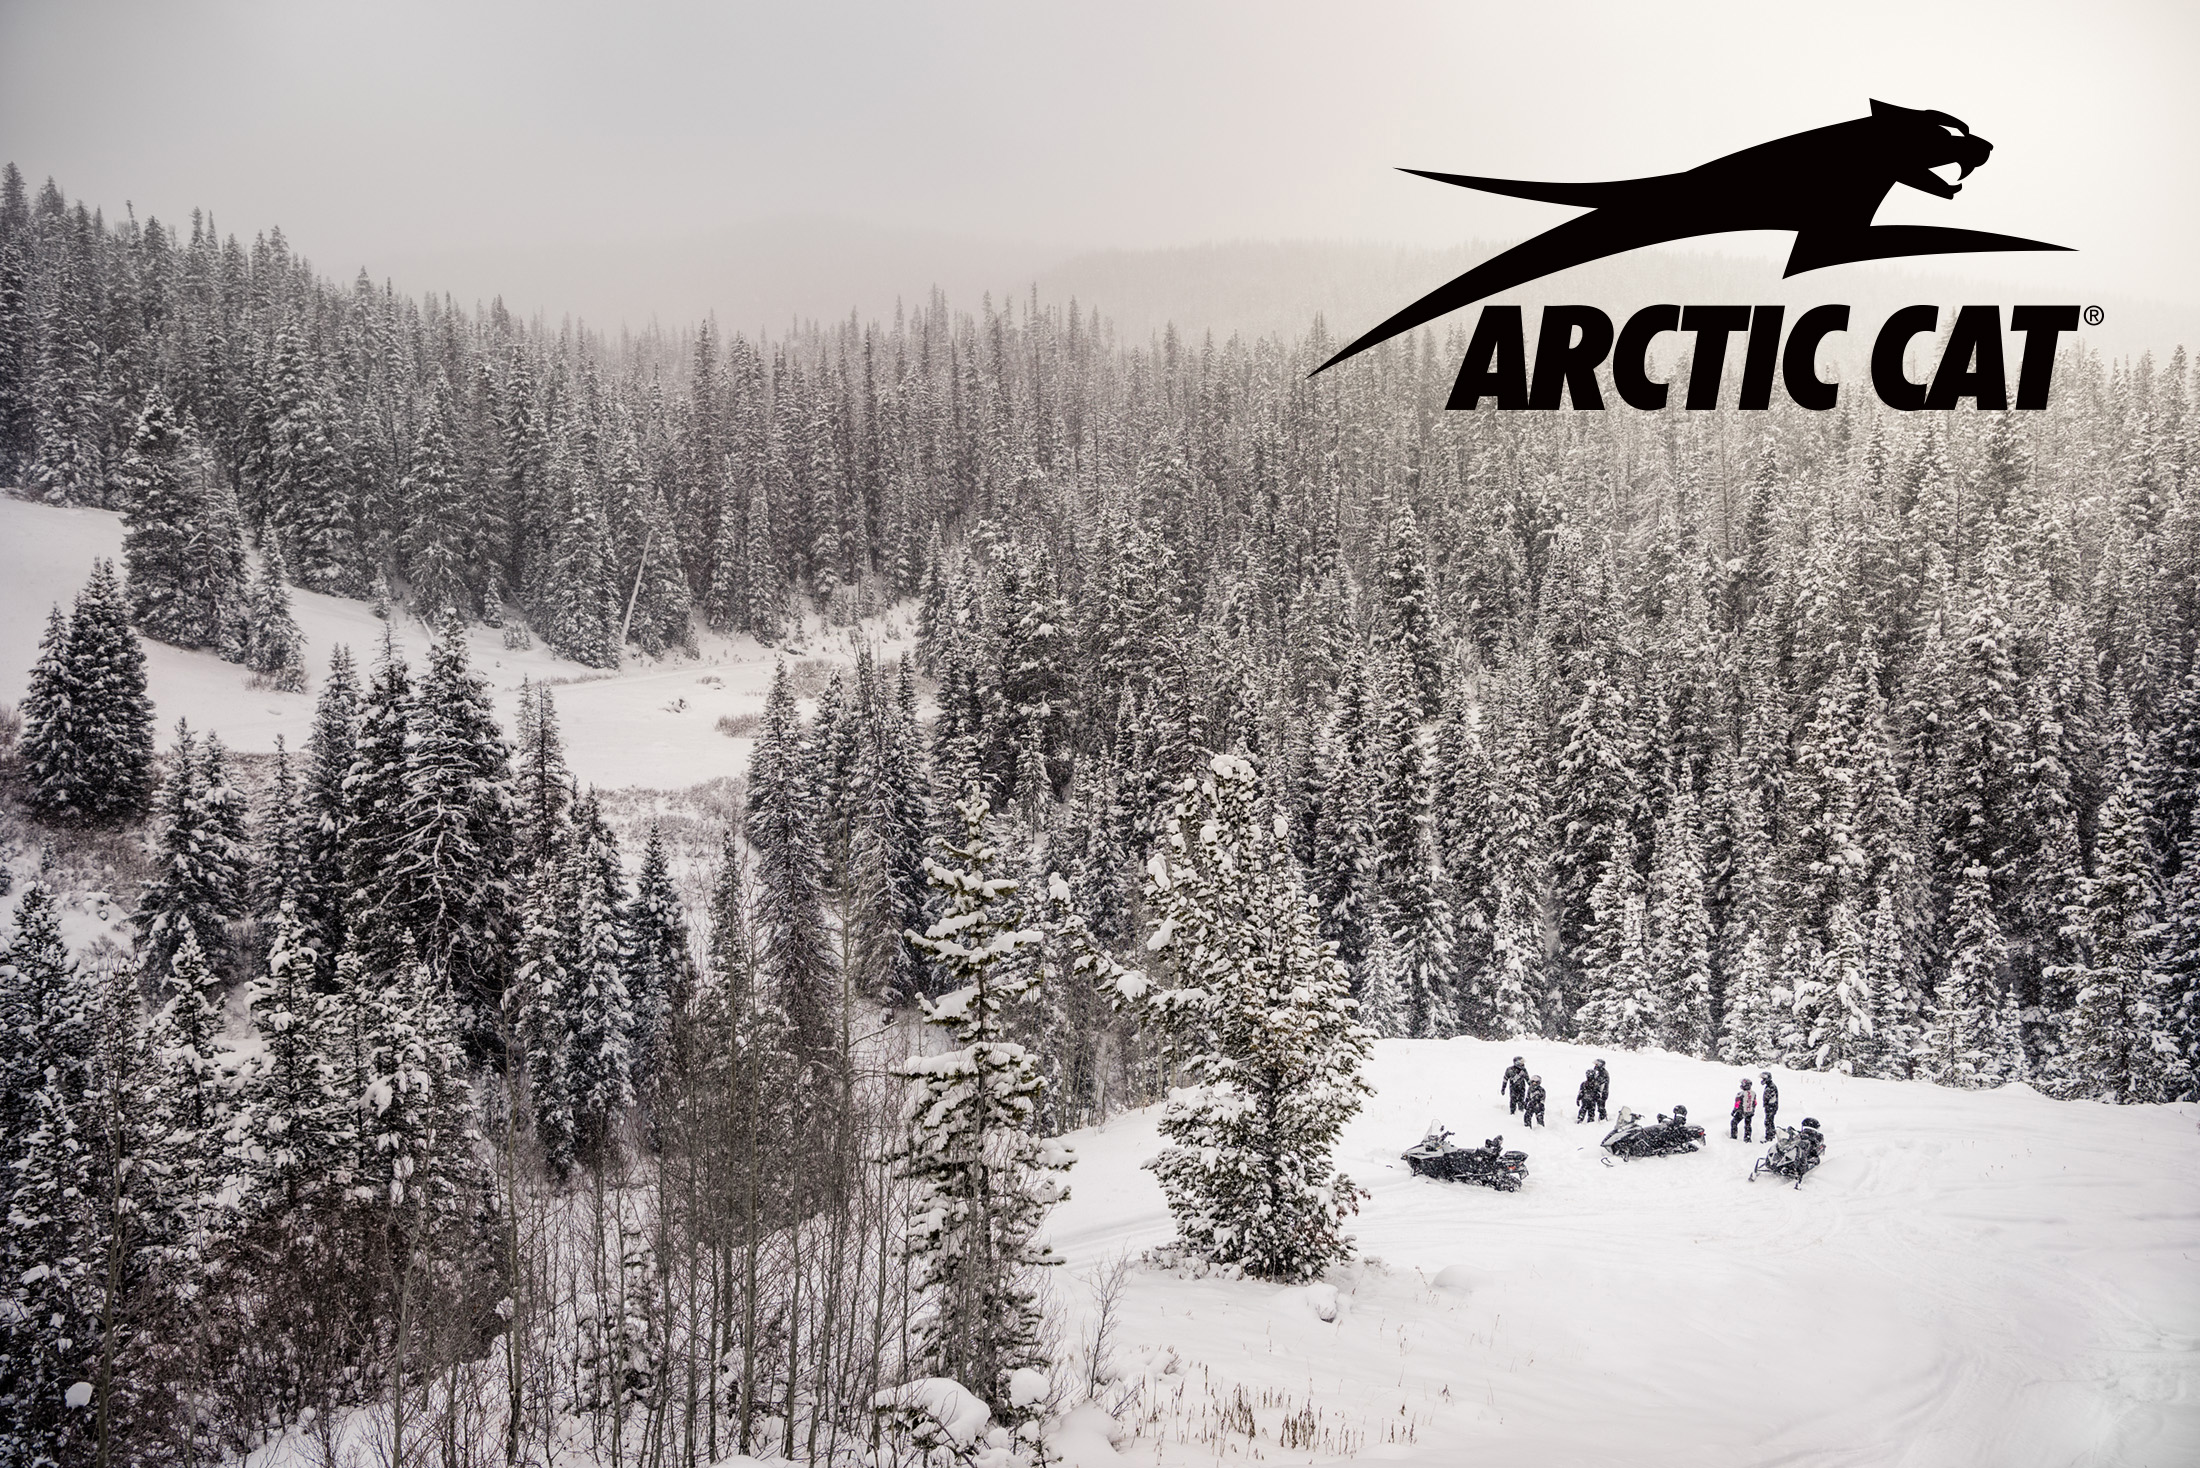 201612_Arctic_Cat_0753_5152_logo